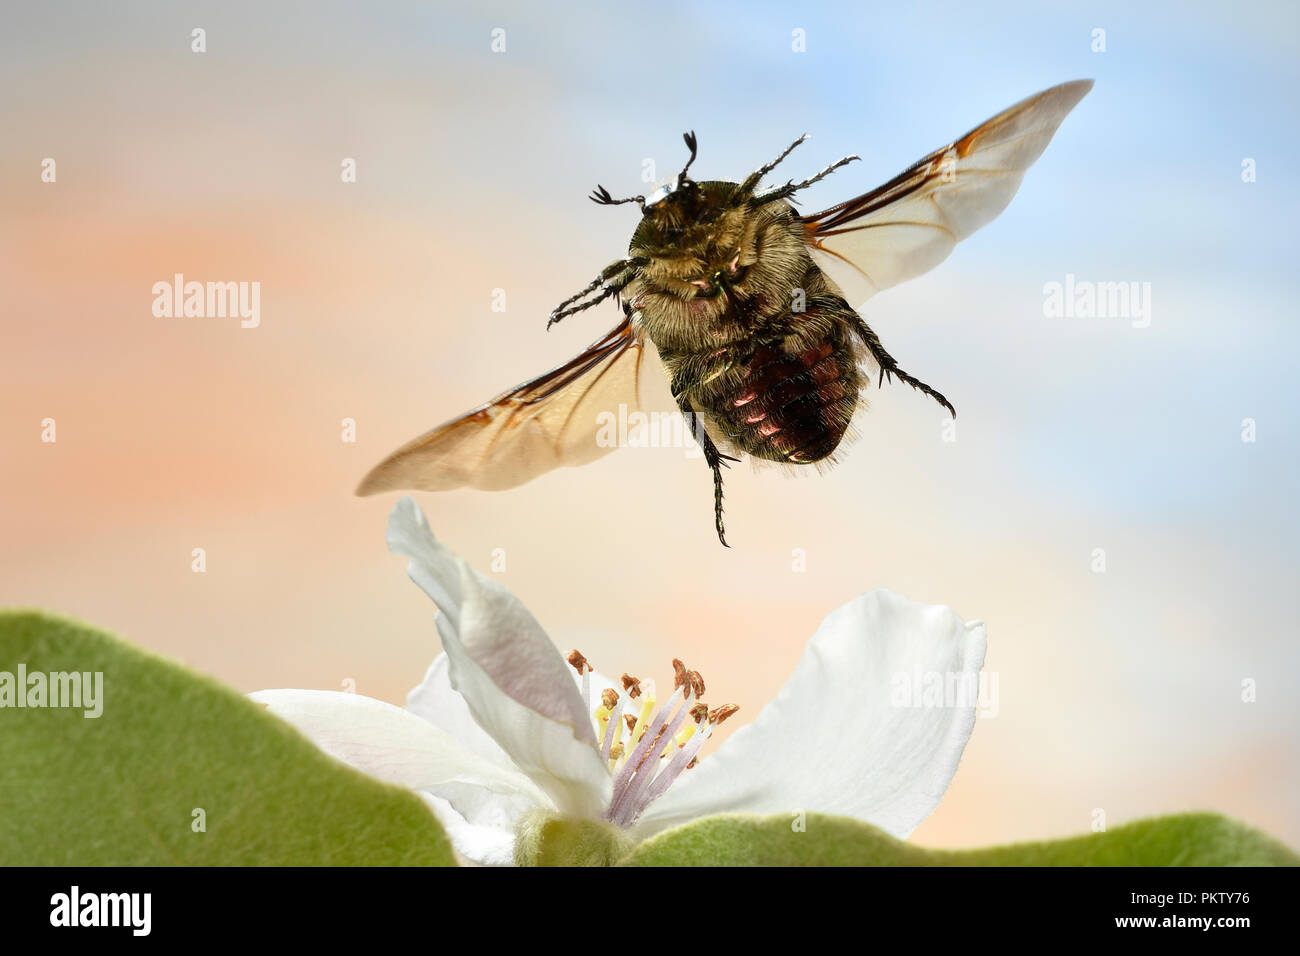 Rose beetle (Cetonia aurata), in flight, apple quince blossom, Germany - Stock Image